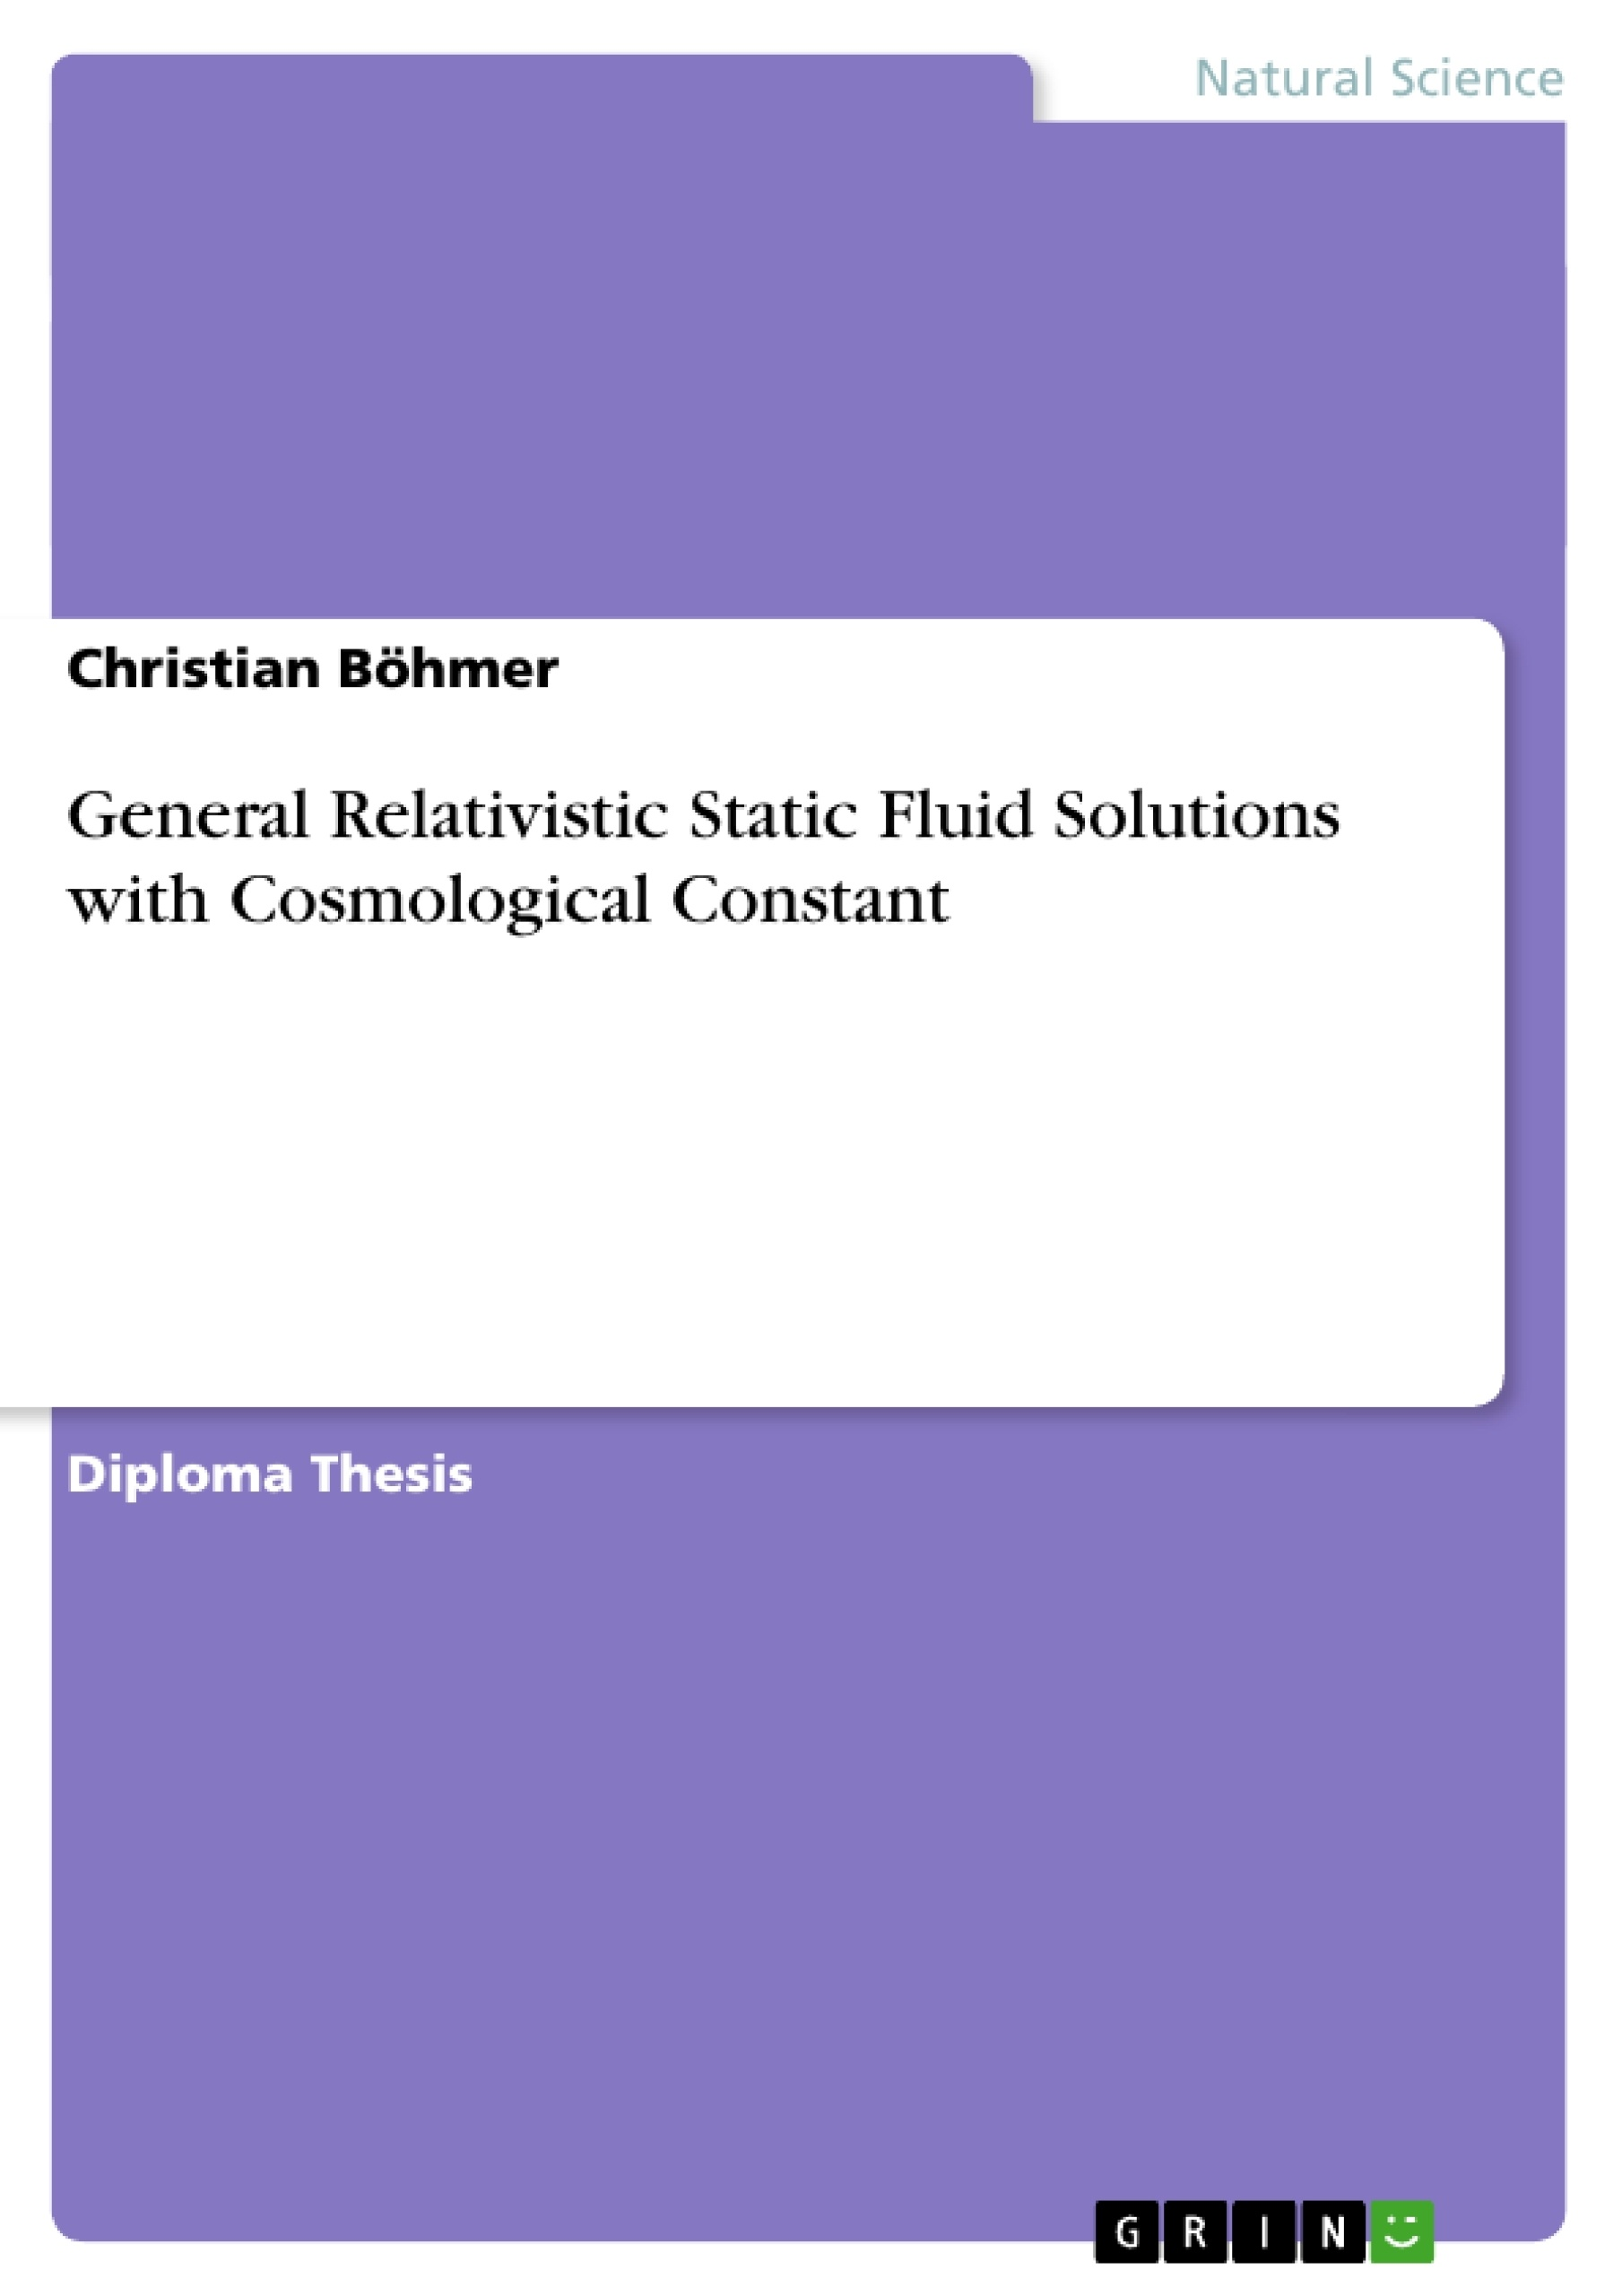 Title: General Relativistic Static Fluid Solutions with Cosmological Constant